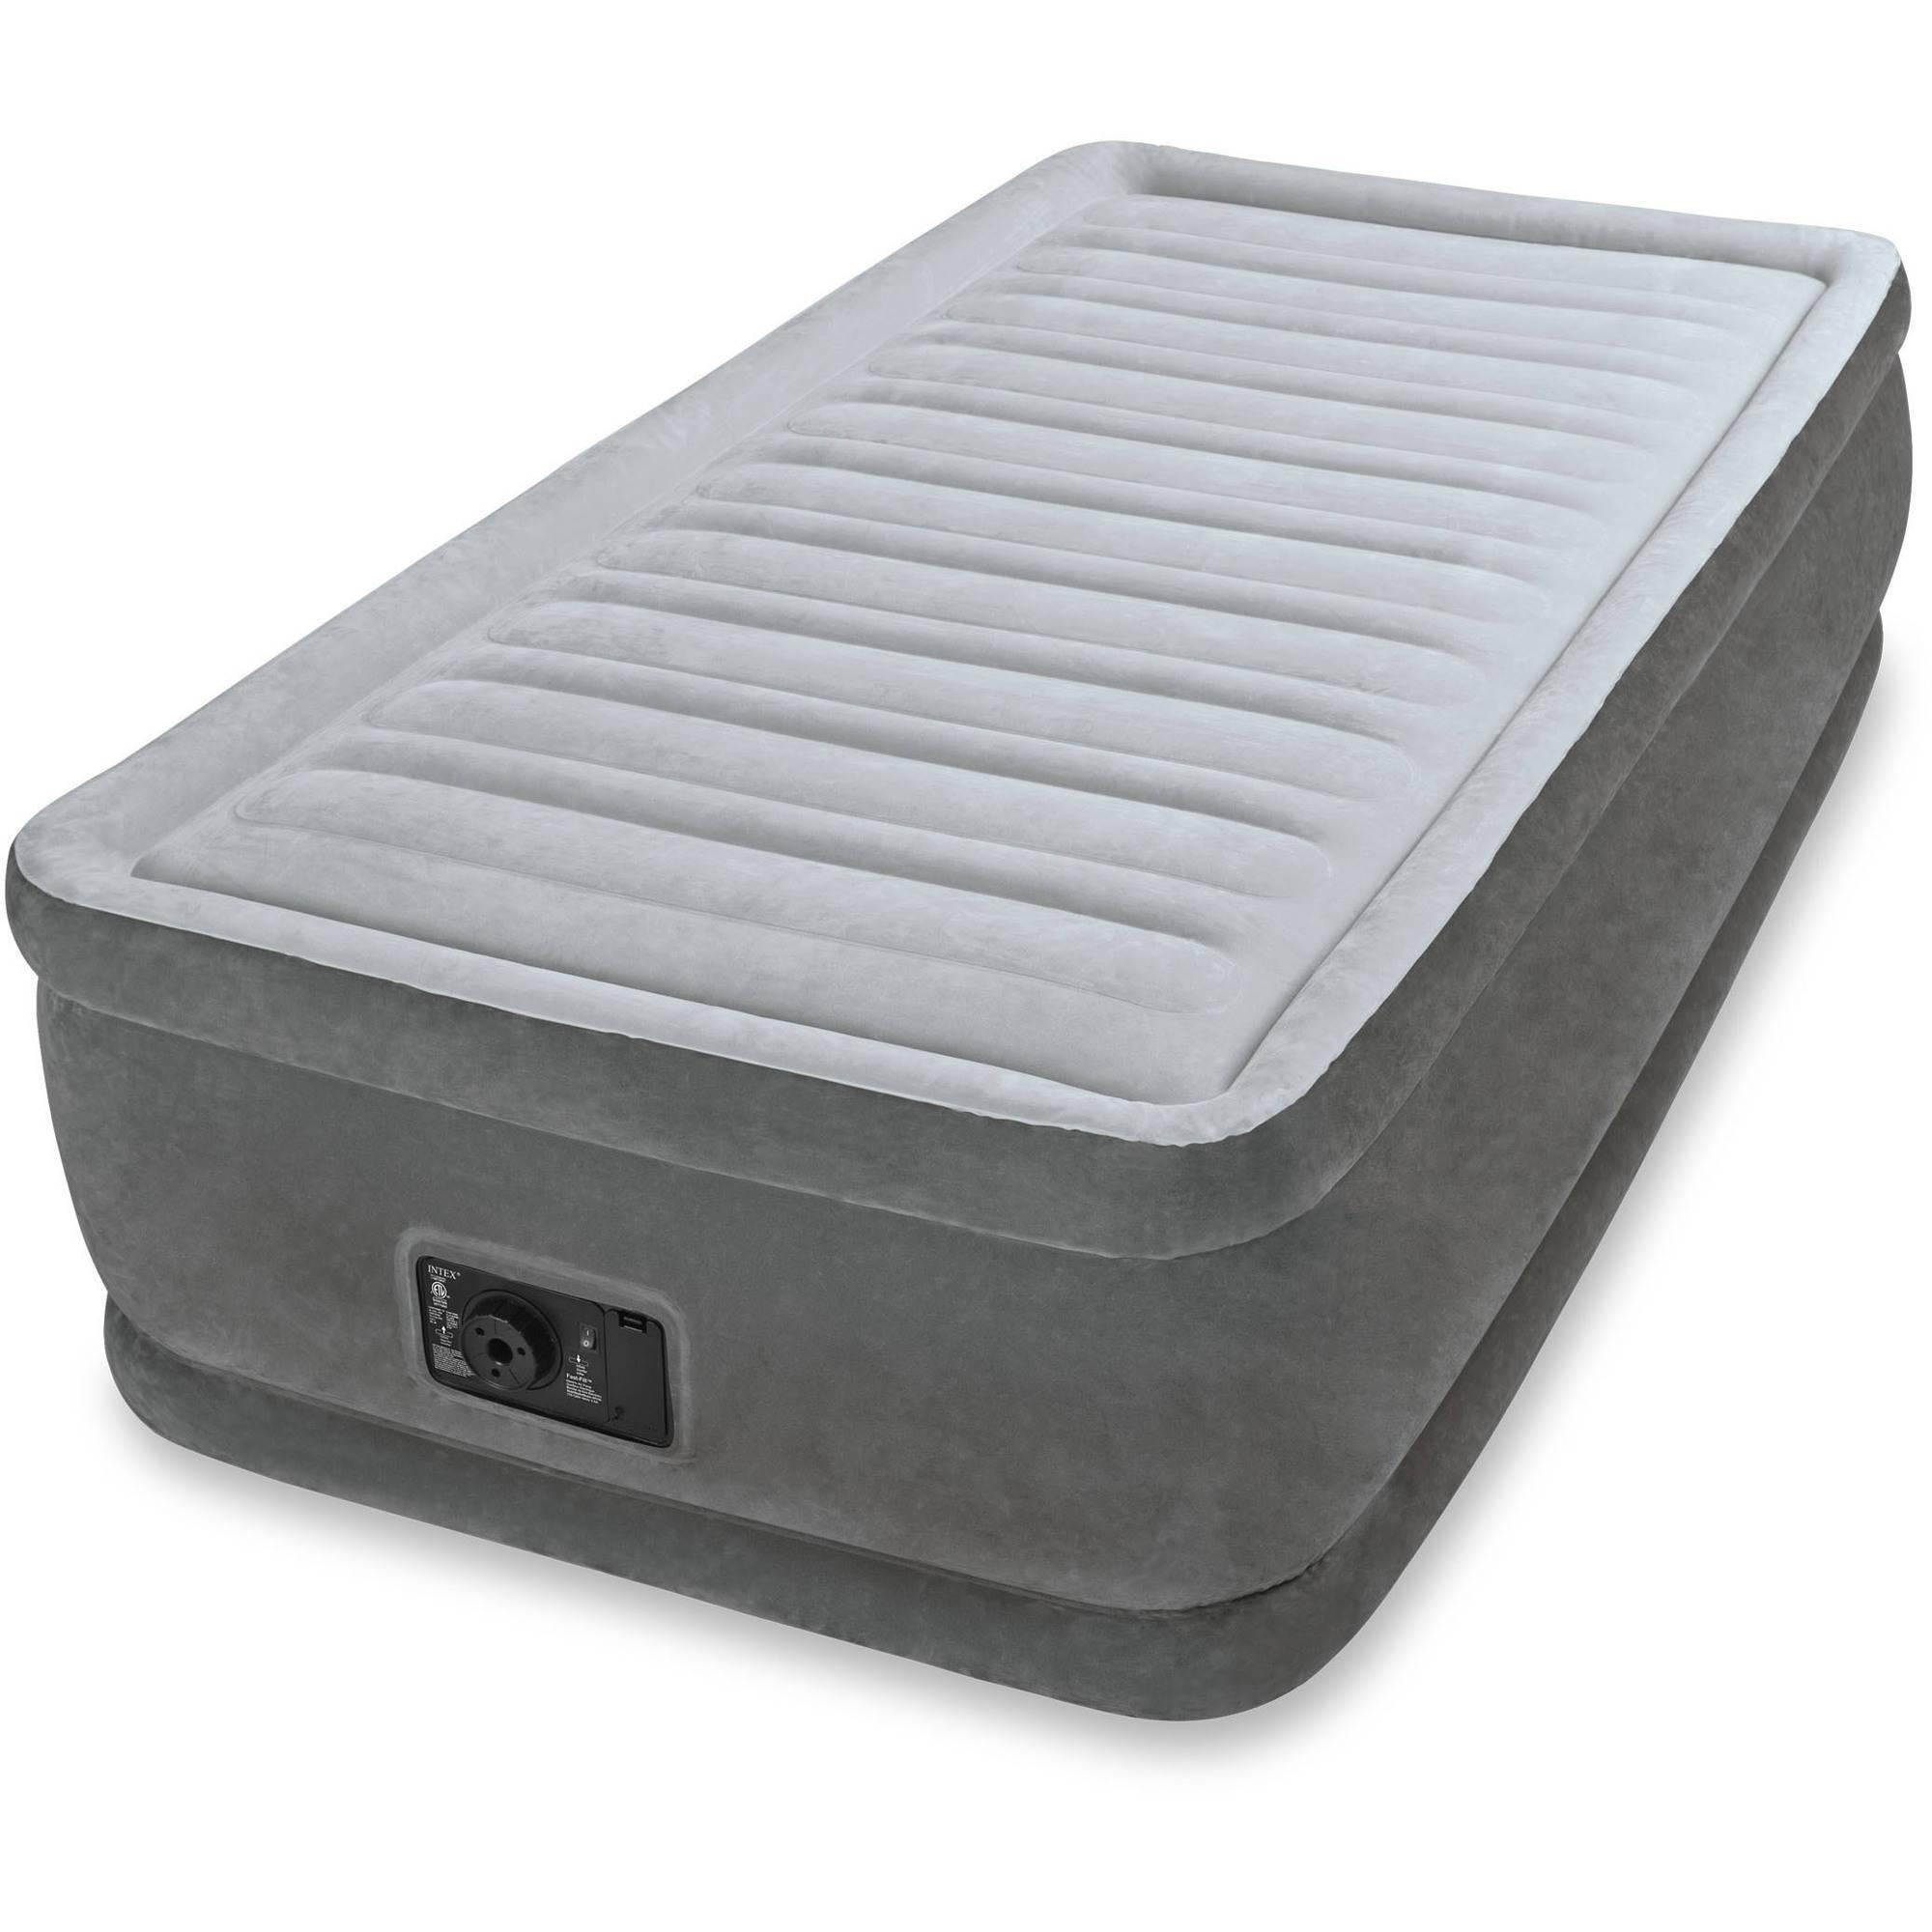 Mattresses : Twin Air Mattress Amazon Full Size Air Mattress Intended For Inflatable Full Size Mattress (Image 18 of 20)